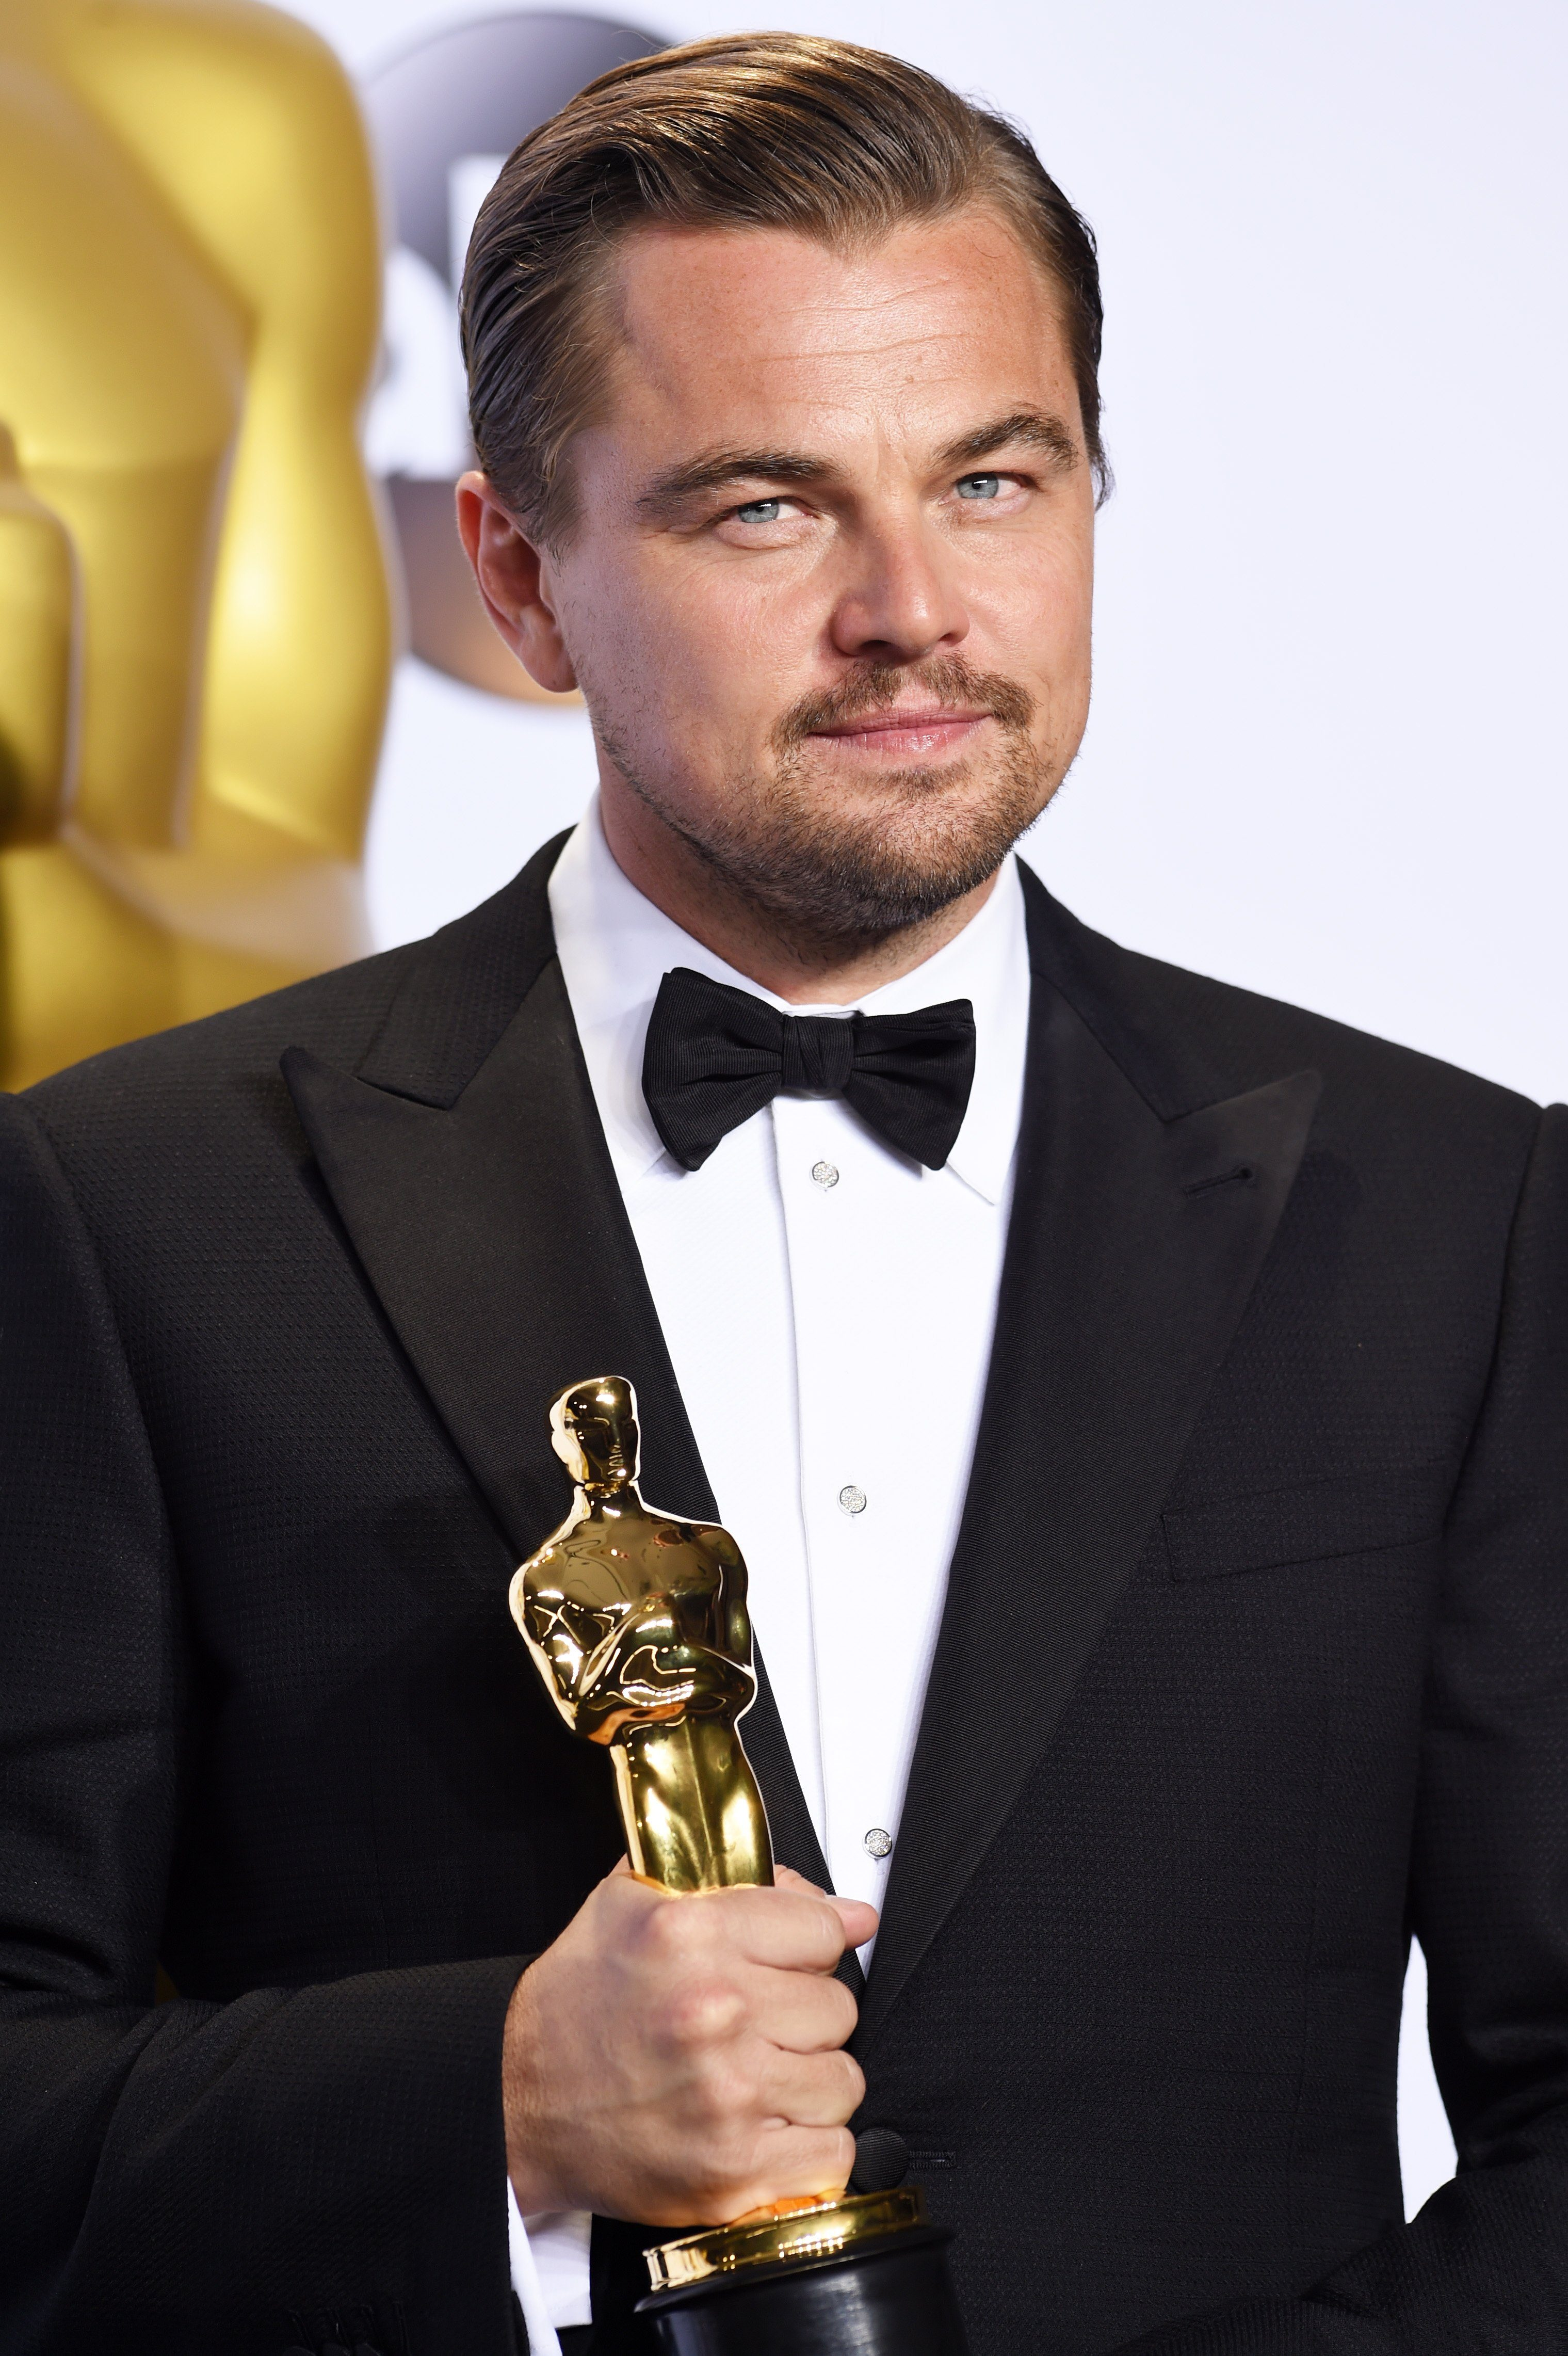 Mandatory Credit: Photo by David Fisher/Shutterstock (5599373ey) Leonardo DiCaprio - Performance by an Actor in a Leading Role, The Revenant 88th Annual Academy Awards, Press Room, Los Angeles, America - 28 Feb 2016